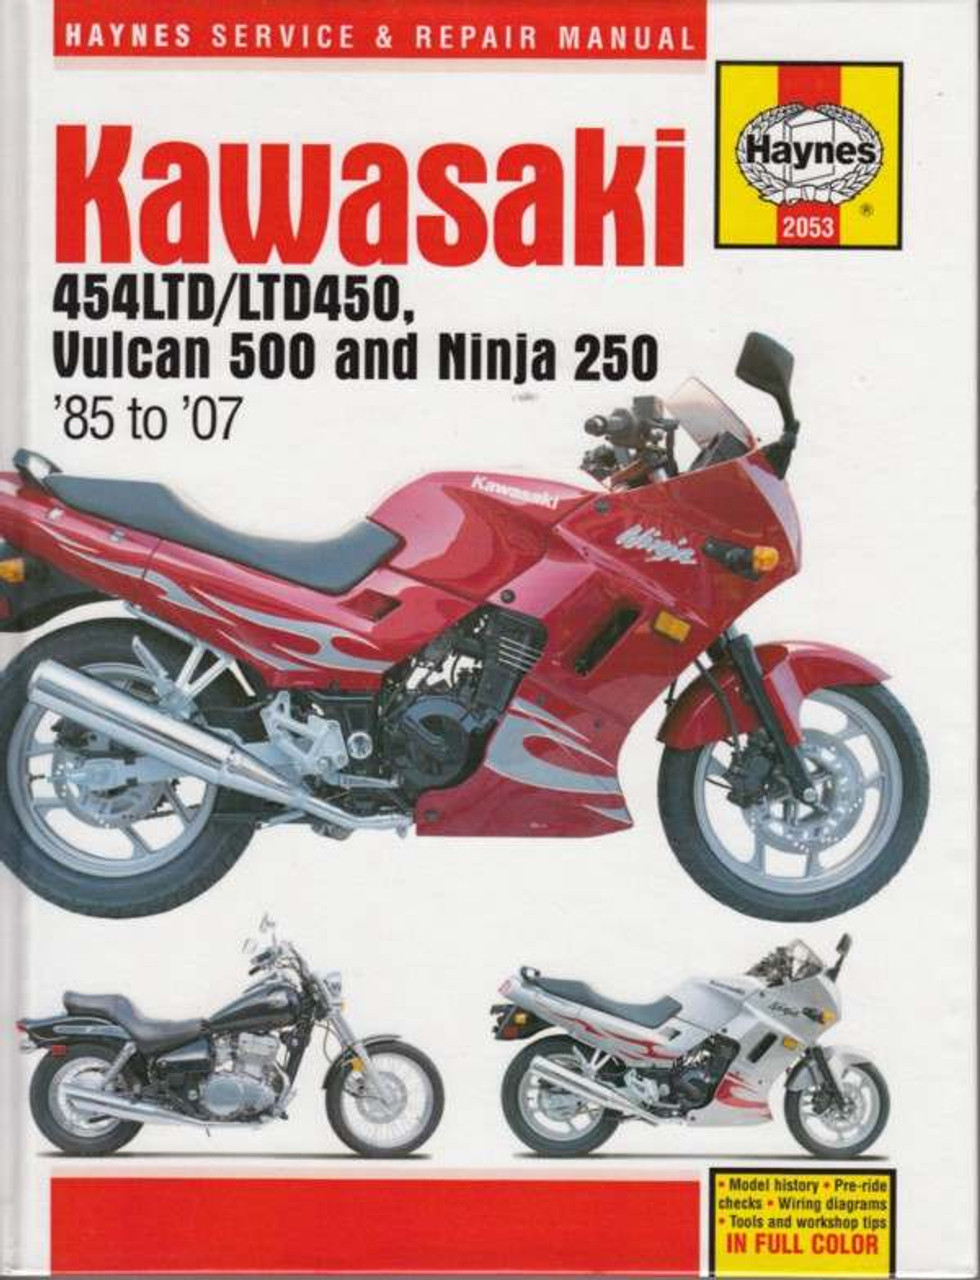 kawasaki 454ltd ltd450 vulcan 500 and ninja 250 1985. Black Bedroom Furniture Sets. Home Design Ideas